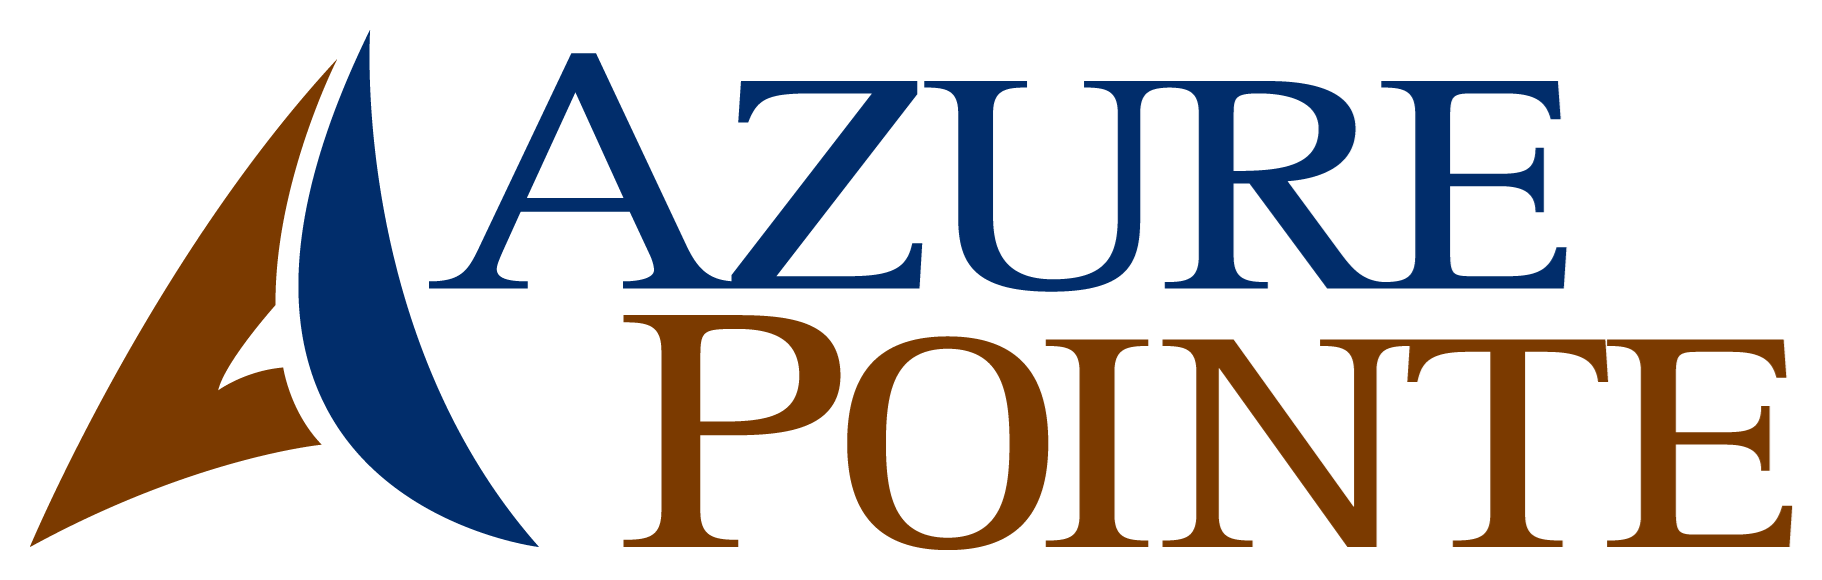 Azure Pointe Property Logo 0